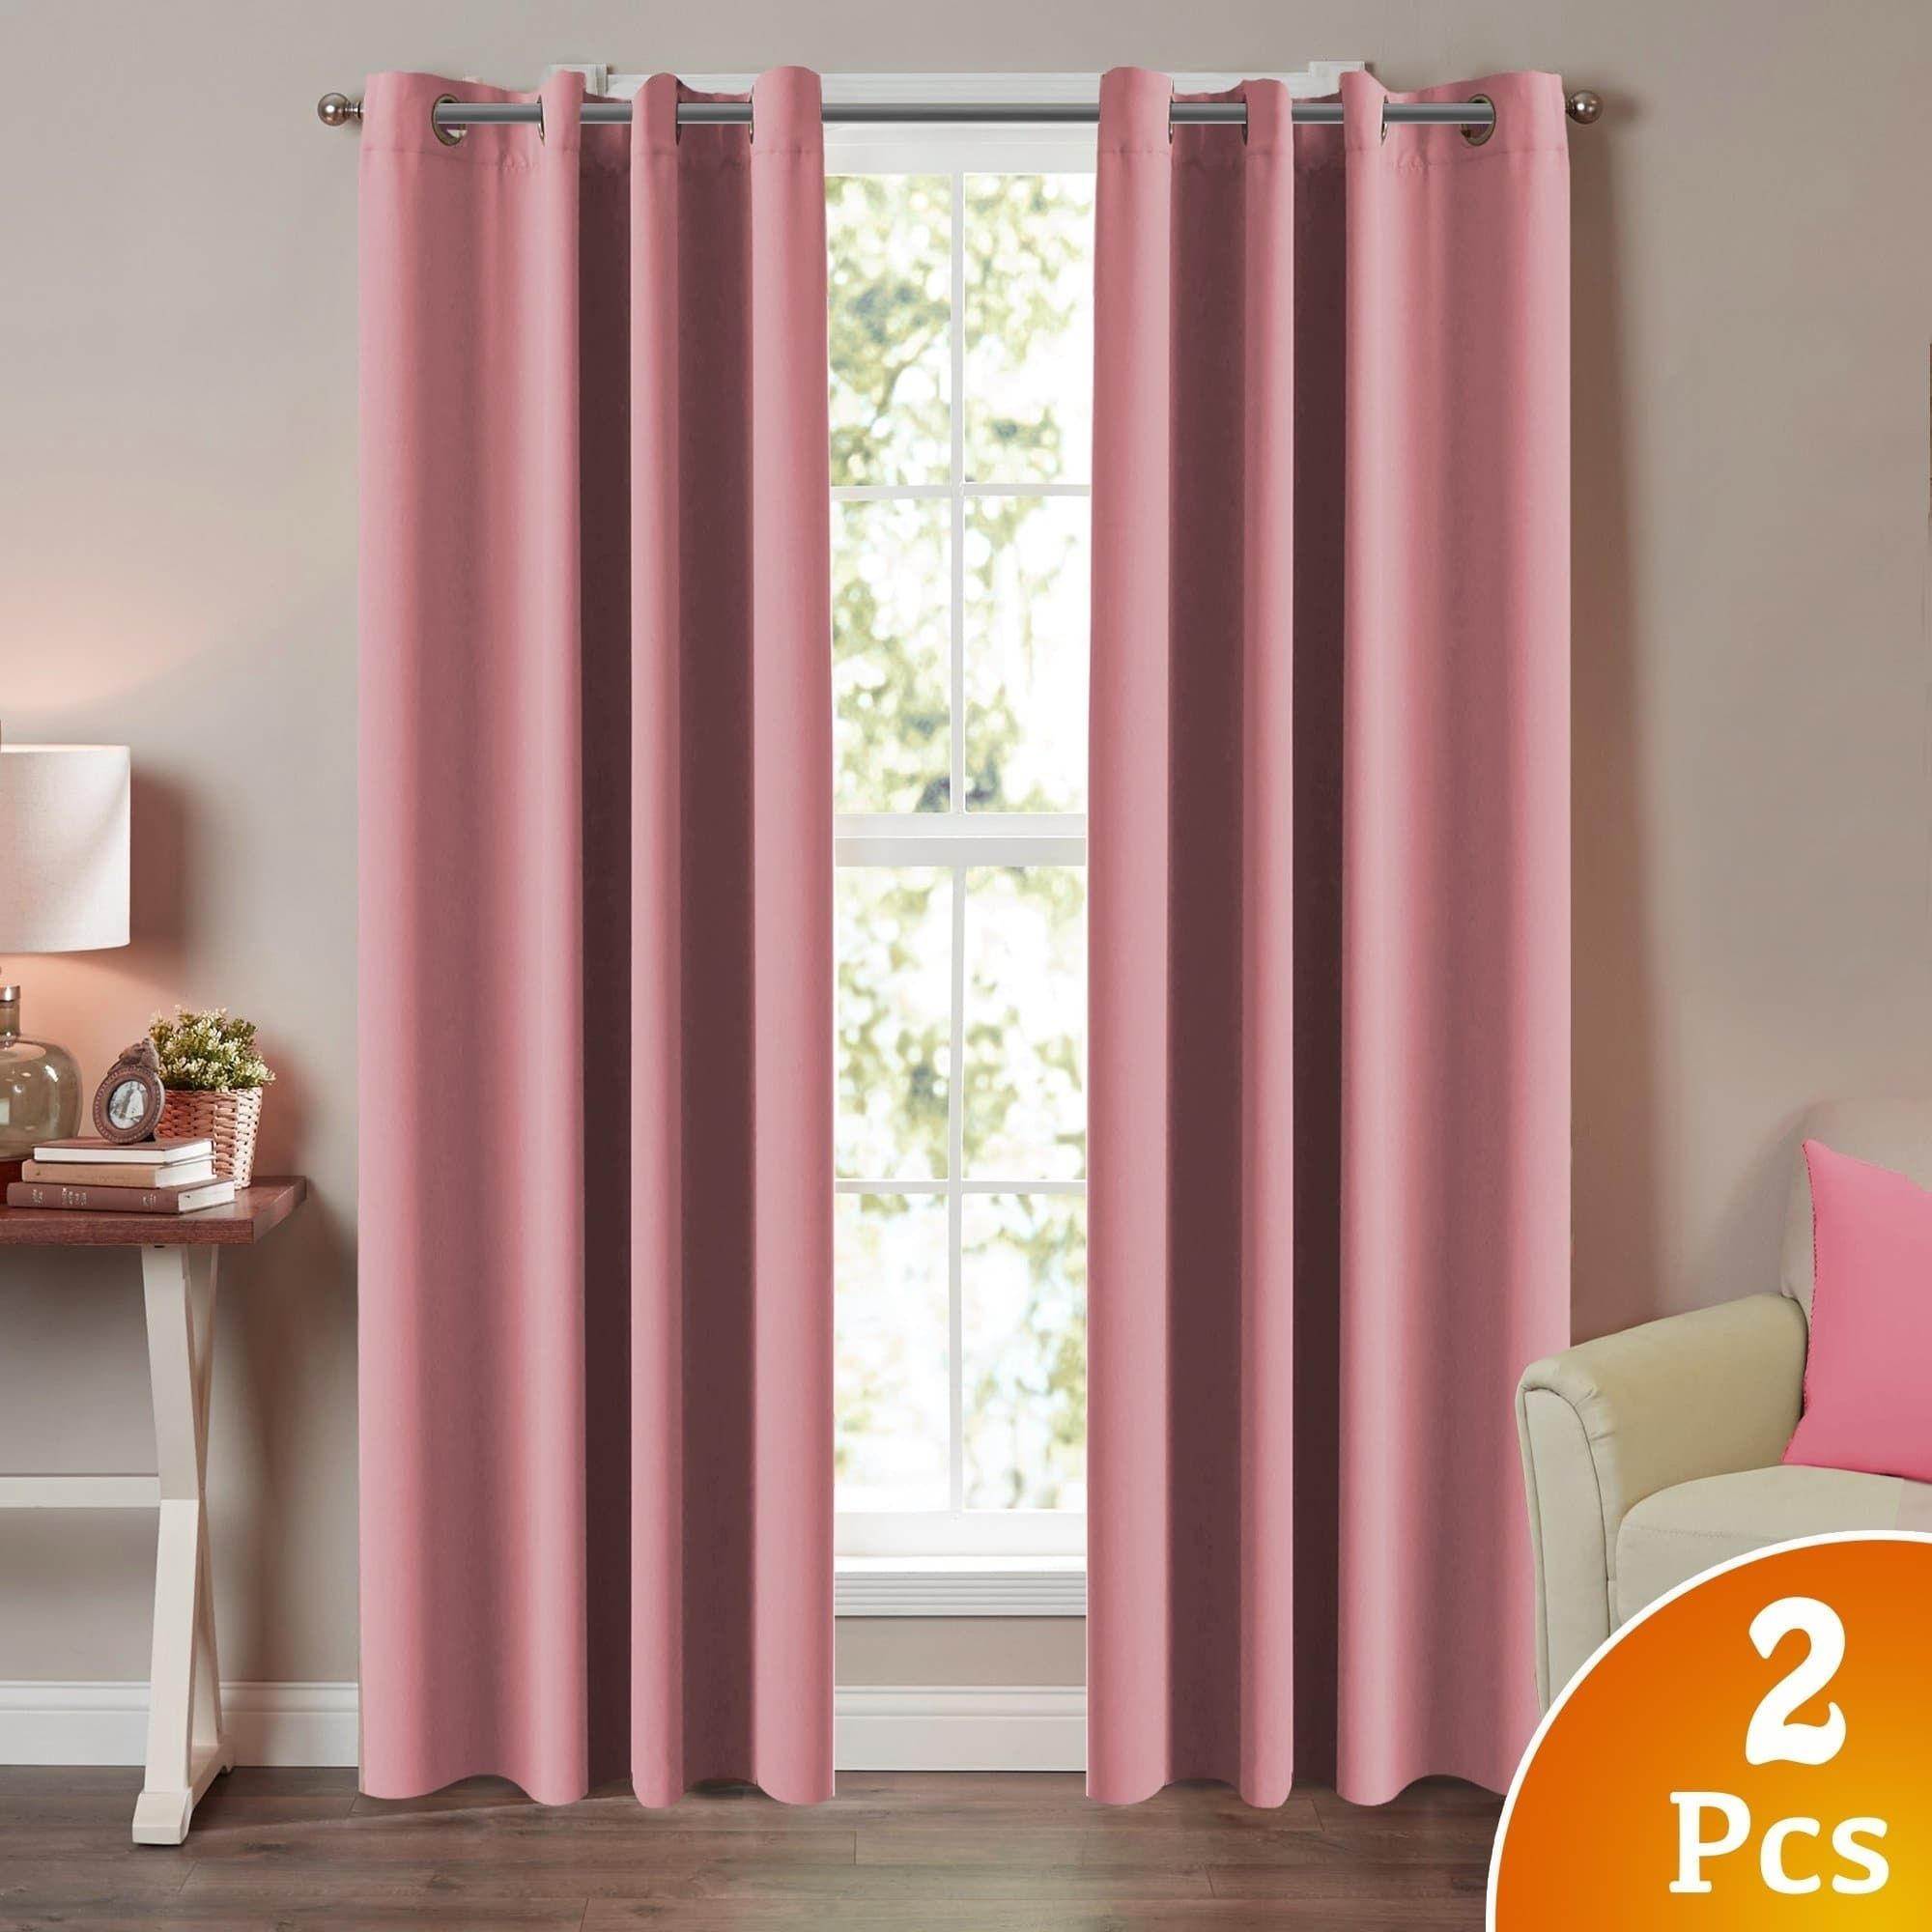 insulatedt alana curtain blackou insulated panels set red woven jacquard pass triple curtains of blackout thermal